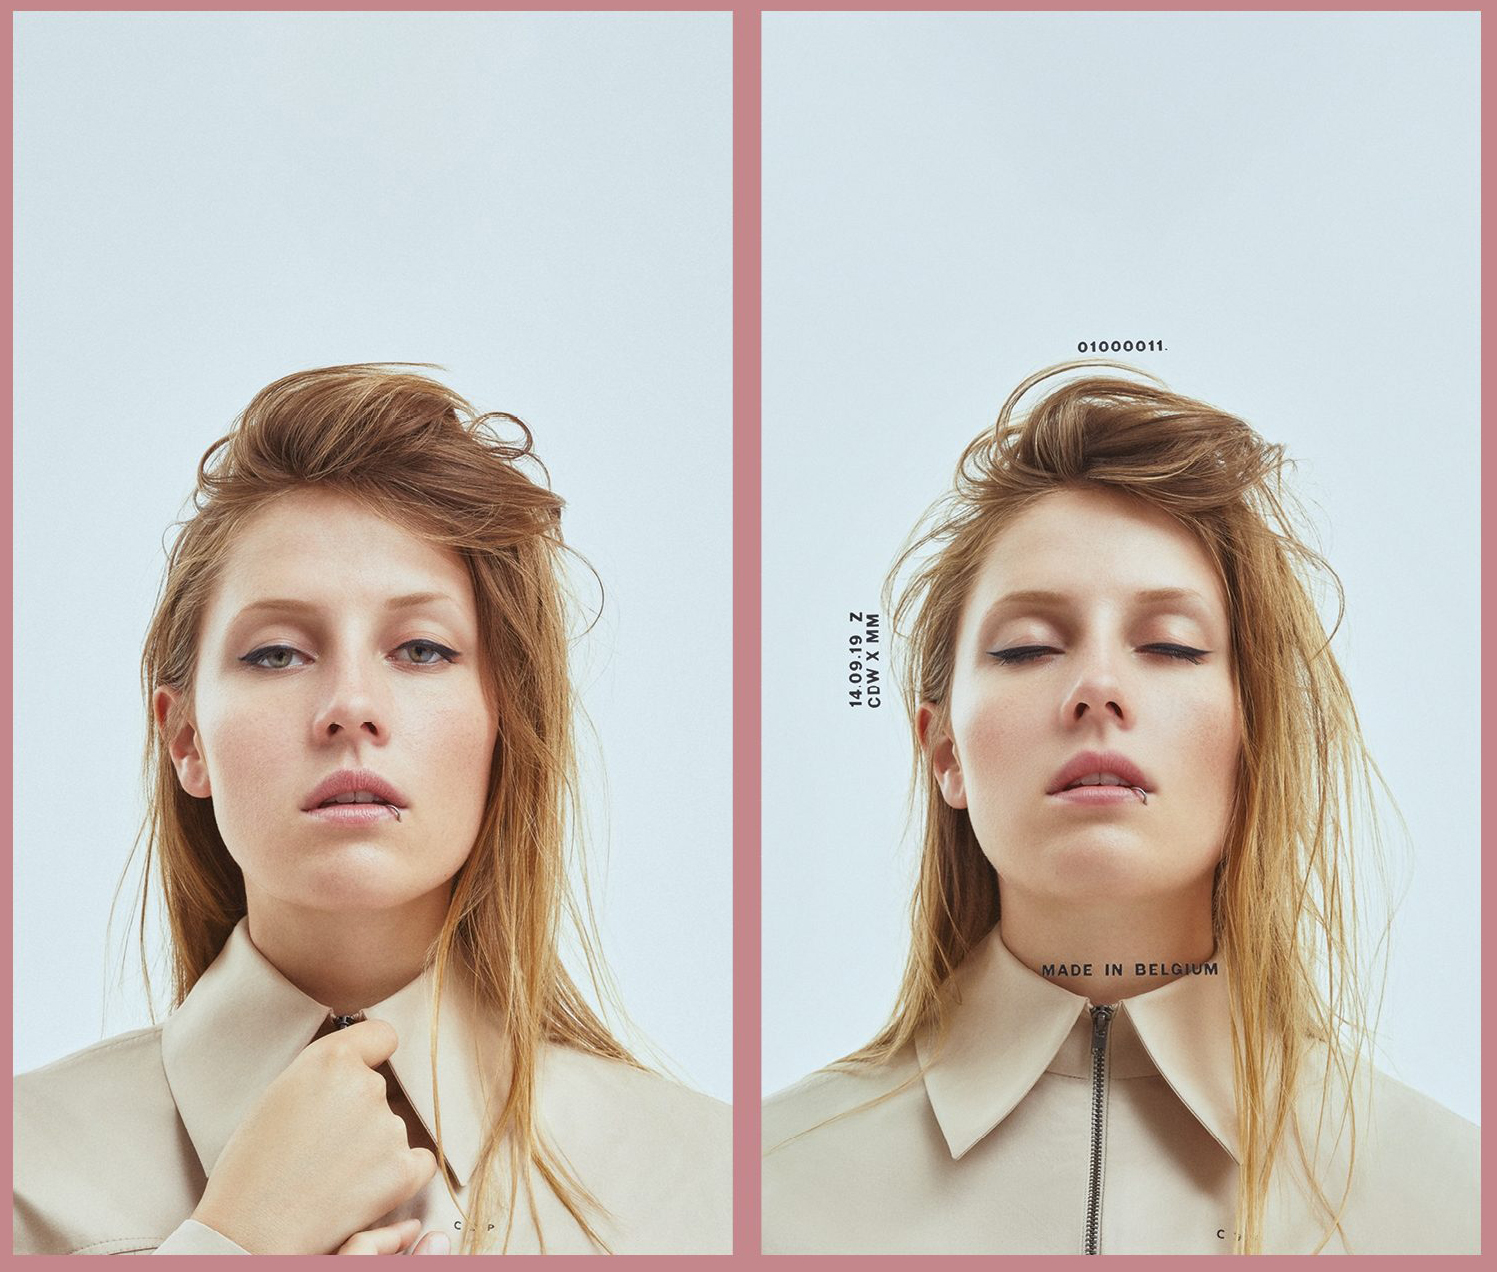 Catch Charlotte de Witte's Livestream of Formula EP In Italy